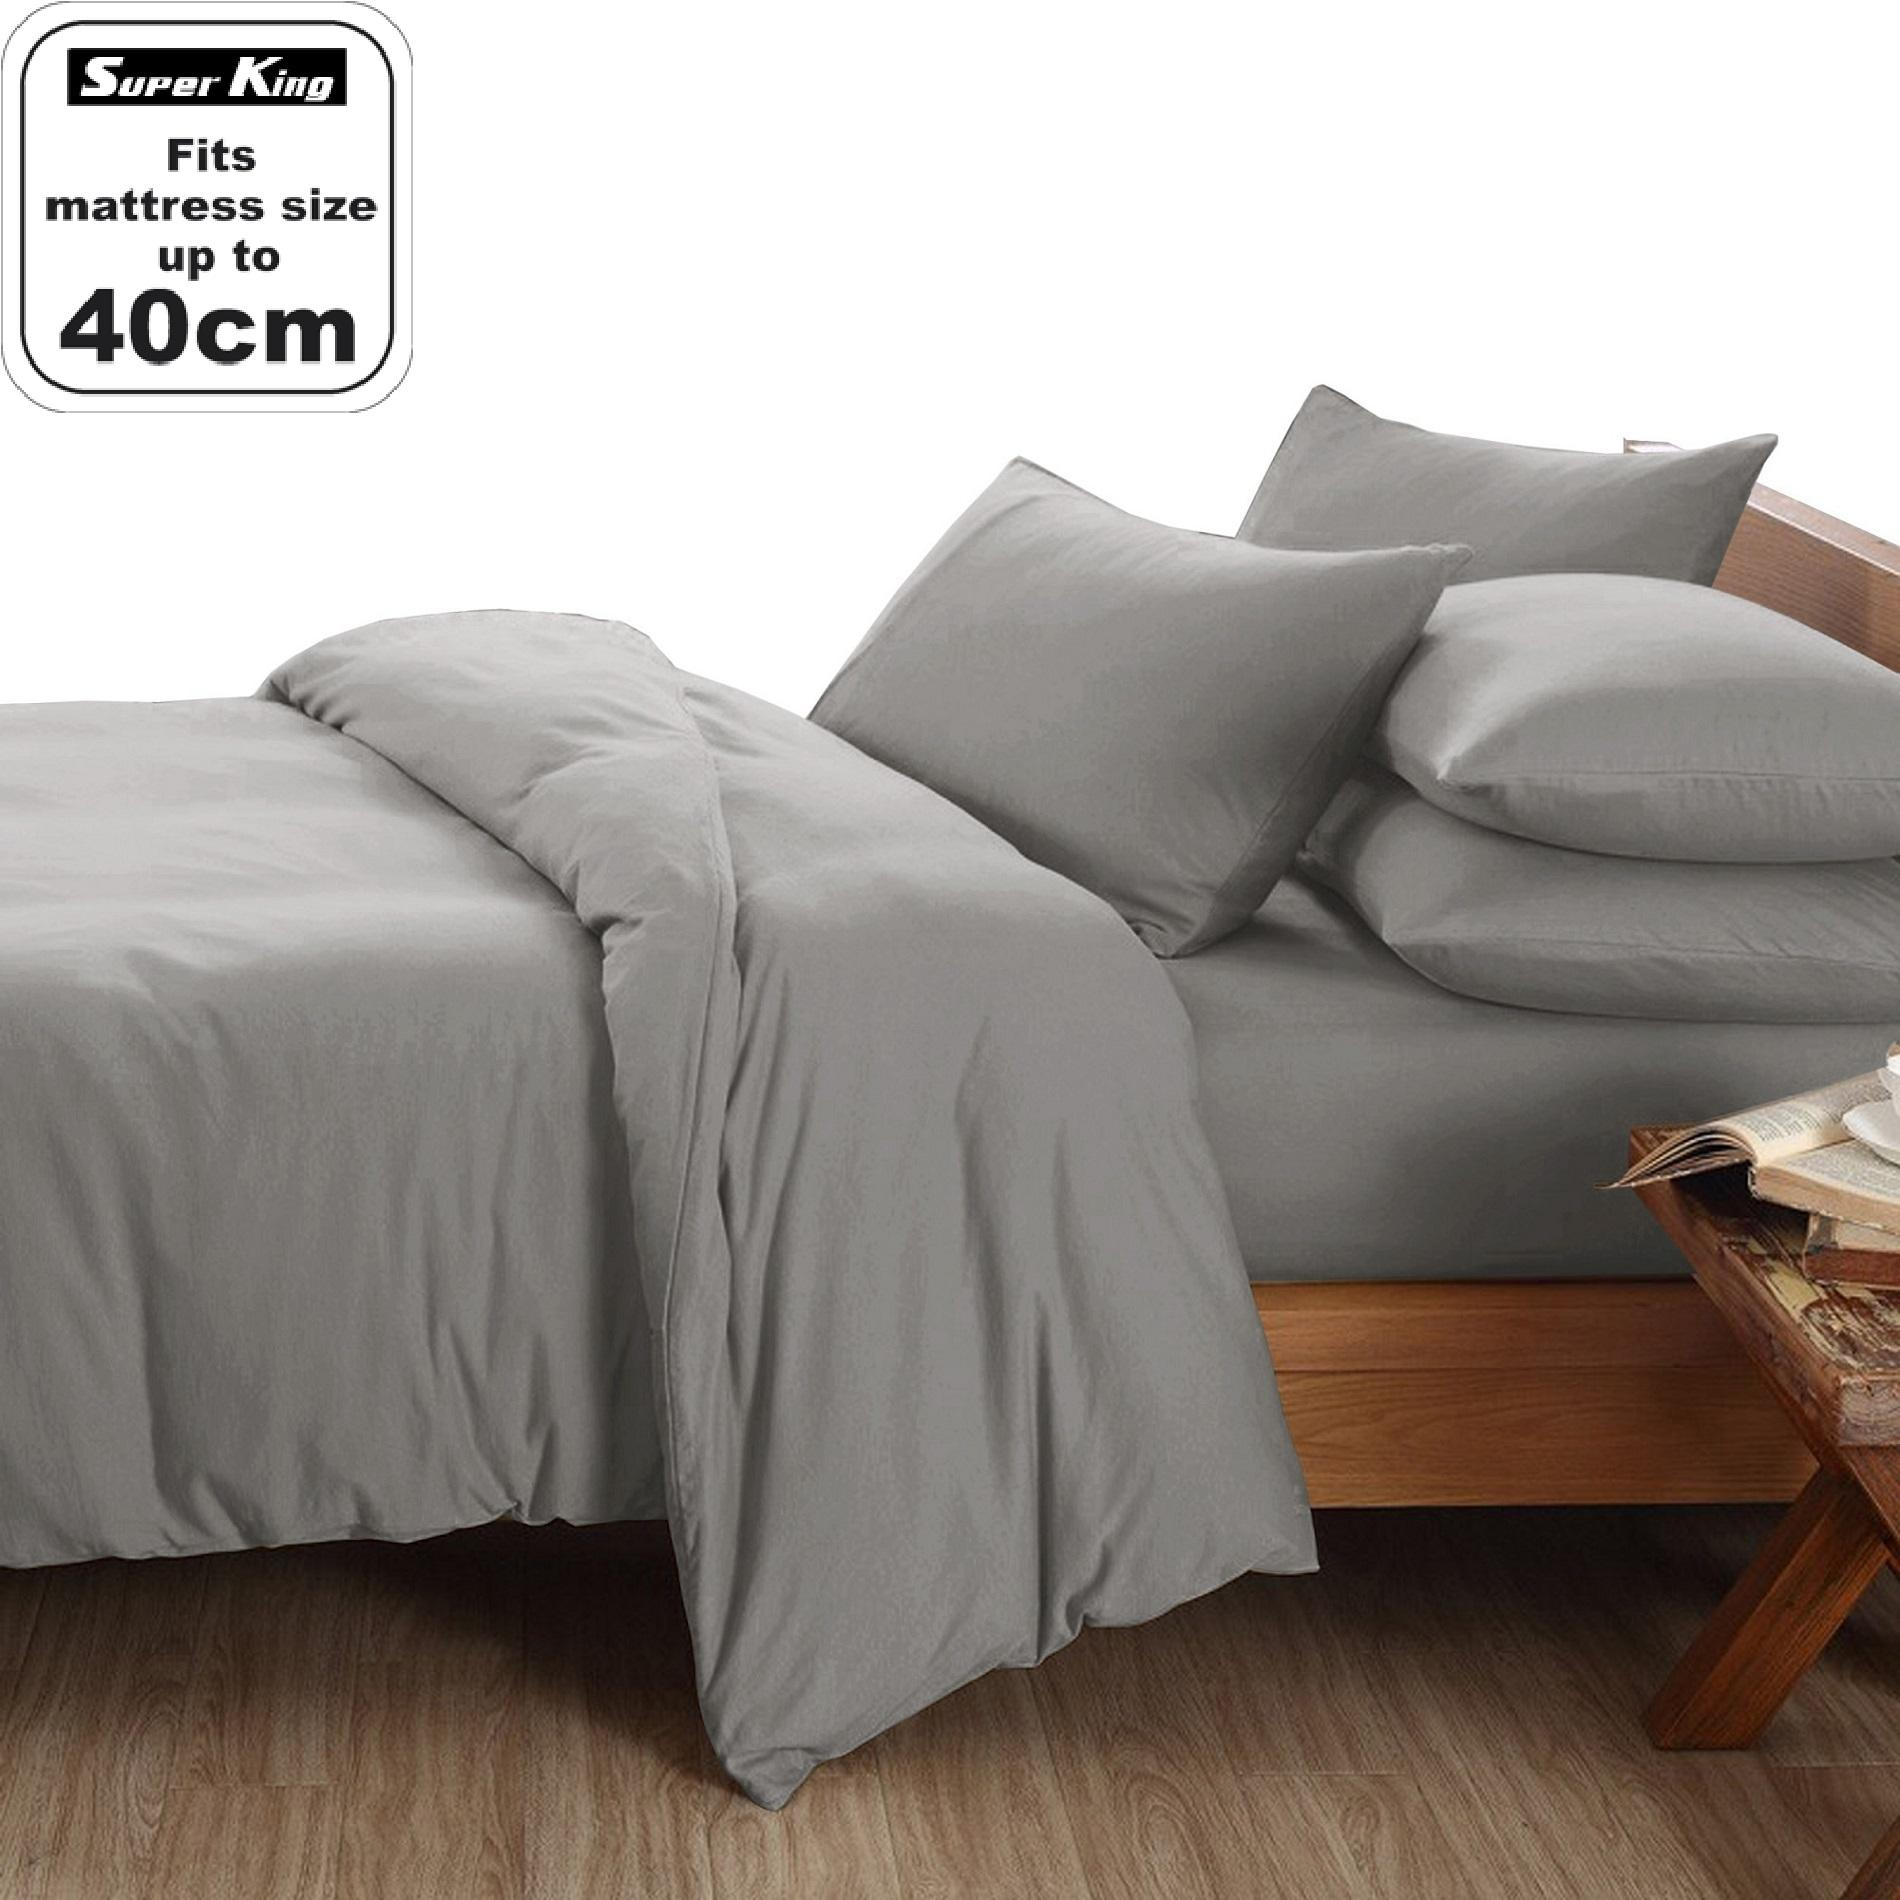 Essina Super King 40cm Candies Quilt Cover & Fitted Bed sheet set Plain & Hotel Cadar Super King 100% Cotton 620 thread counts (fit 16 inch High Mattress)